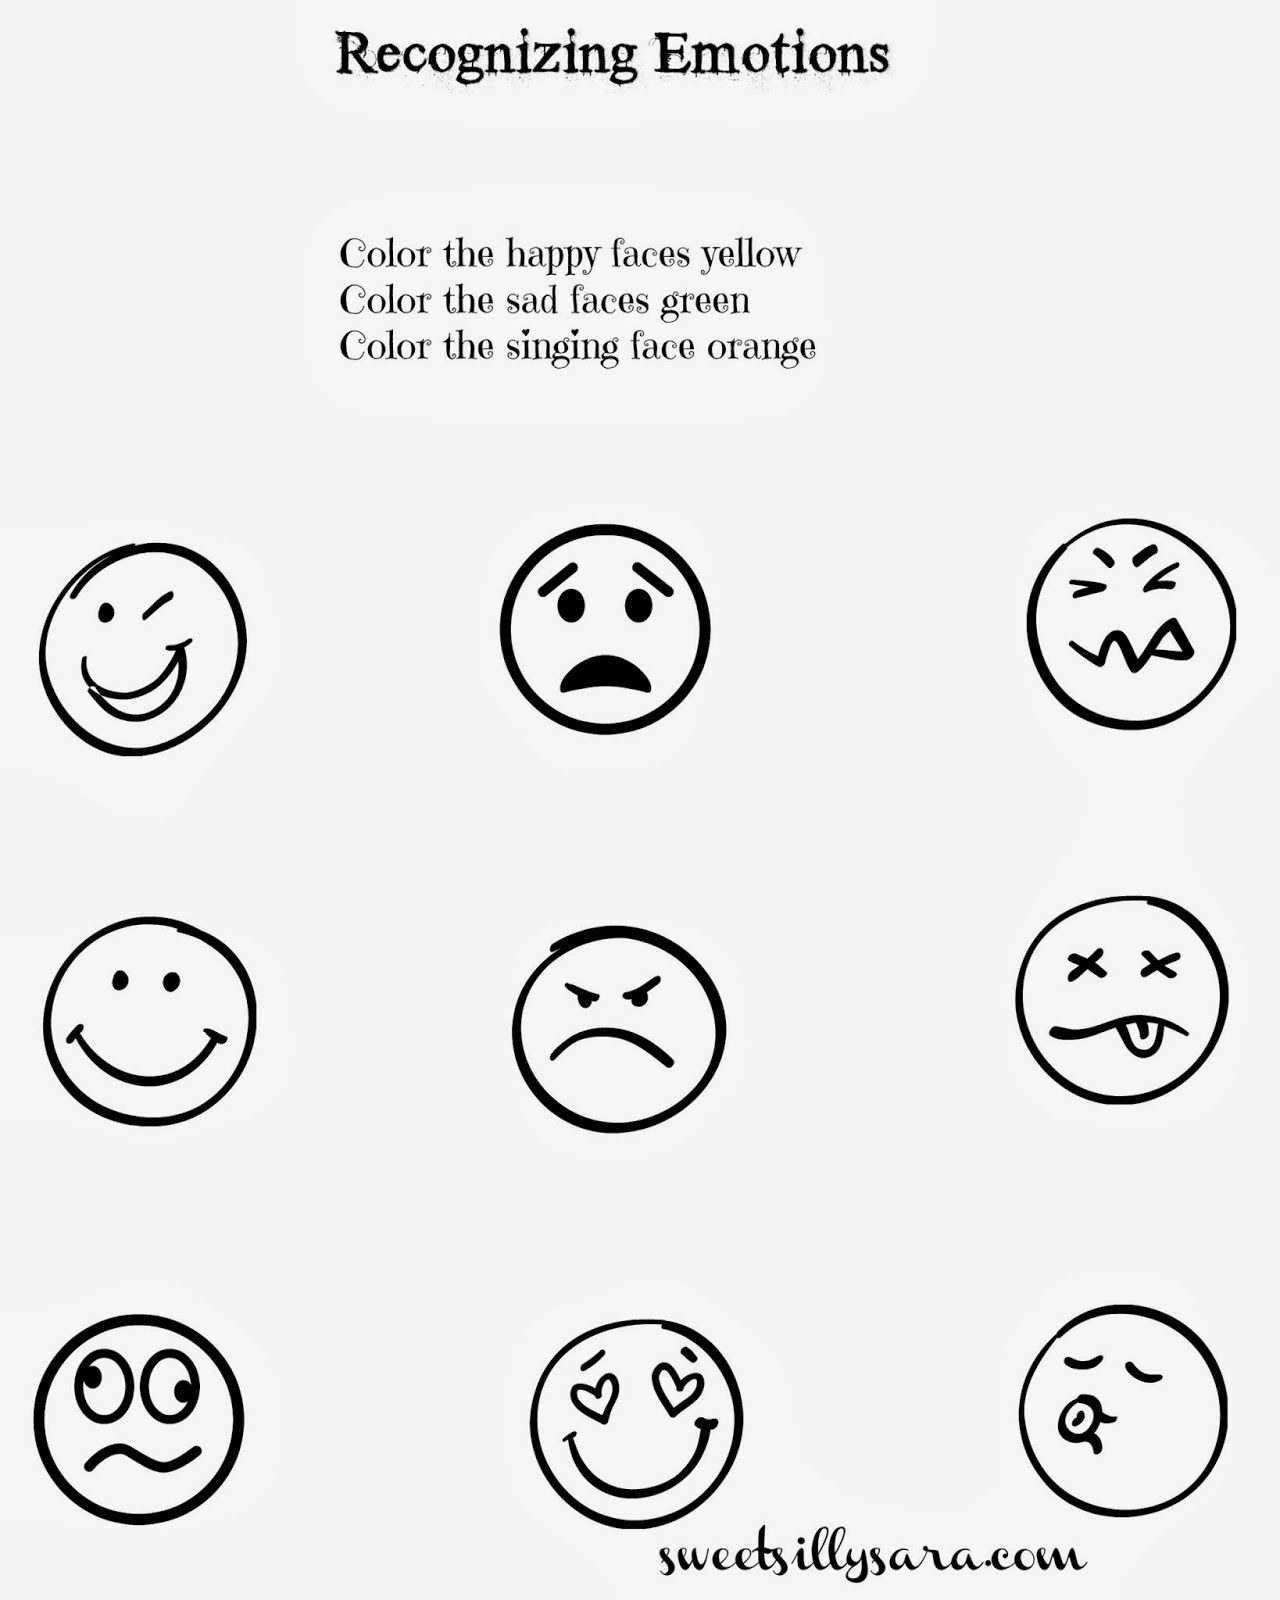 Sweet Silly Sara Recognizing Emotions Worksheet For Kids